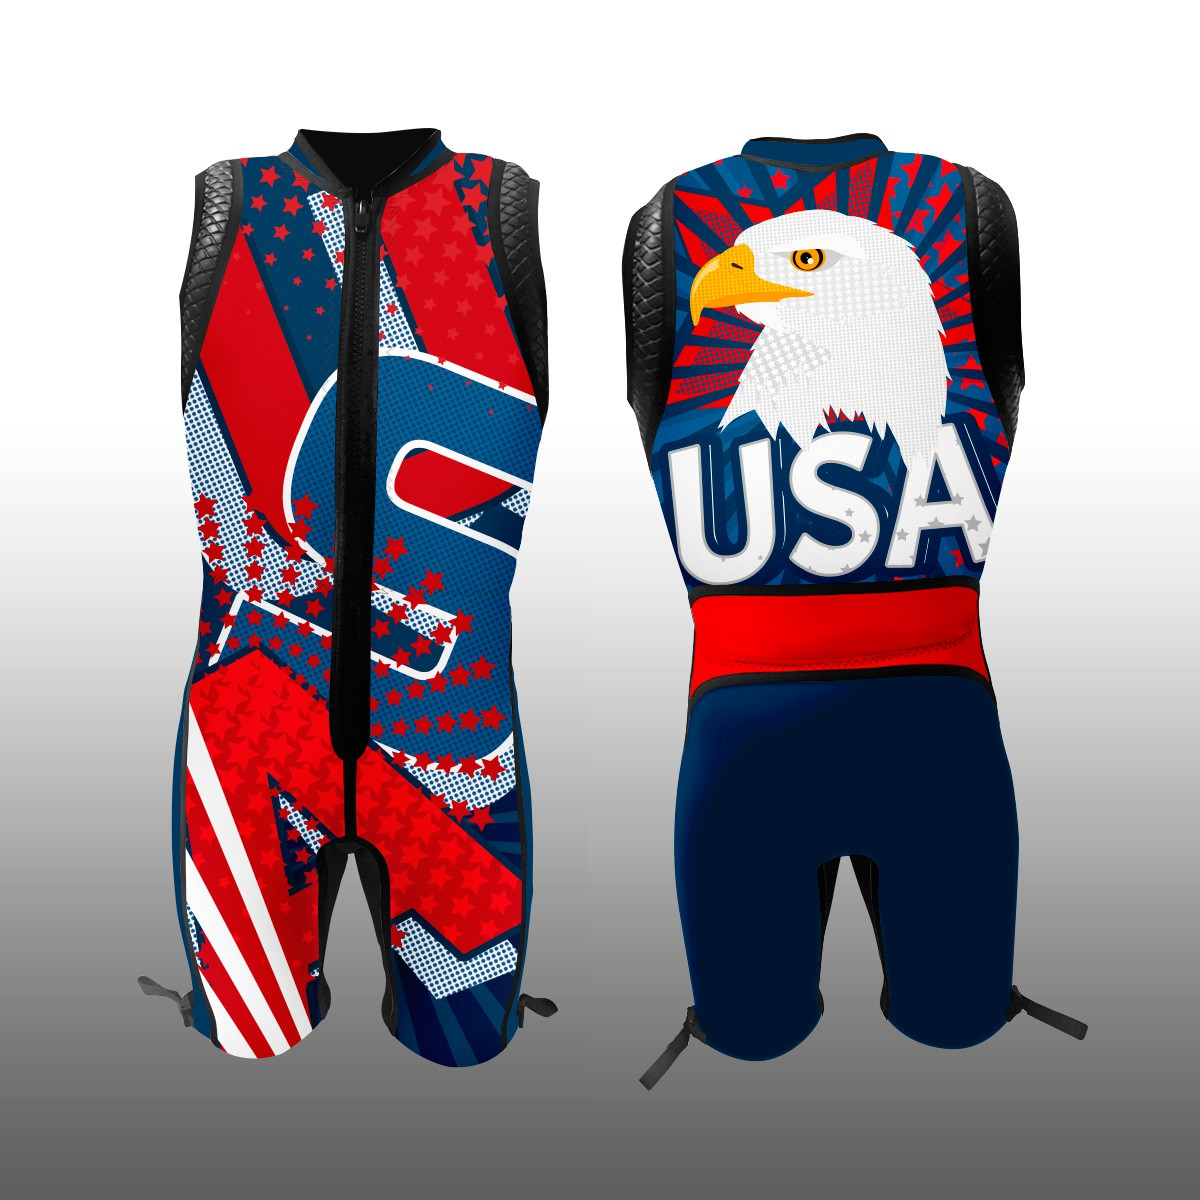 Design a Wetsuit for the 2018 USA Team